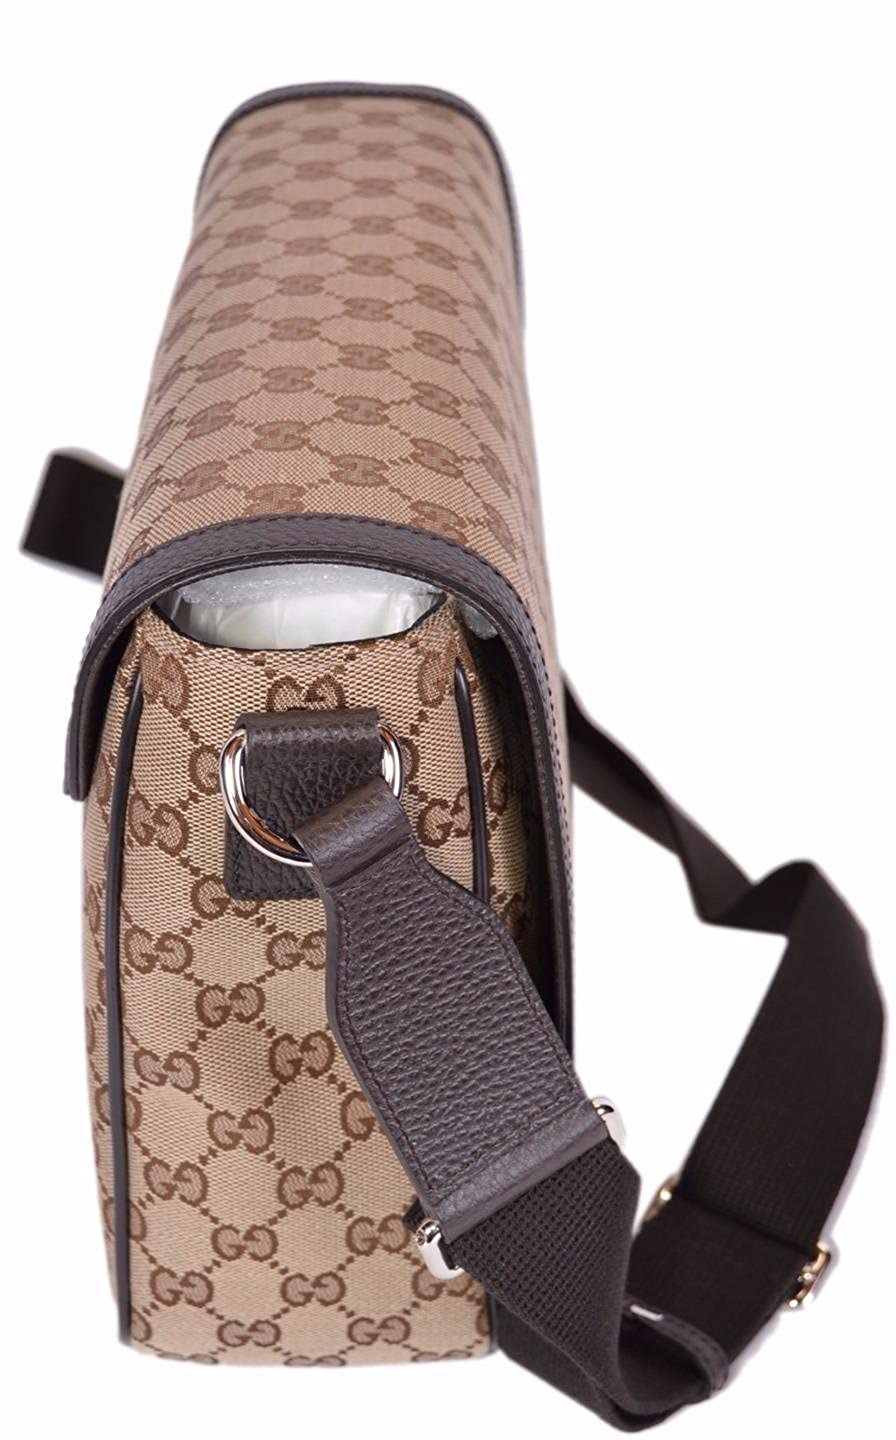 f55fe1061fa Amazon.com  Gucci GG Guccissima Canvas Large Crossbody Messenger Bag  (449171 Beige)  Shoes